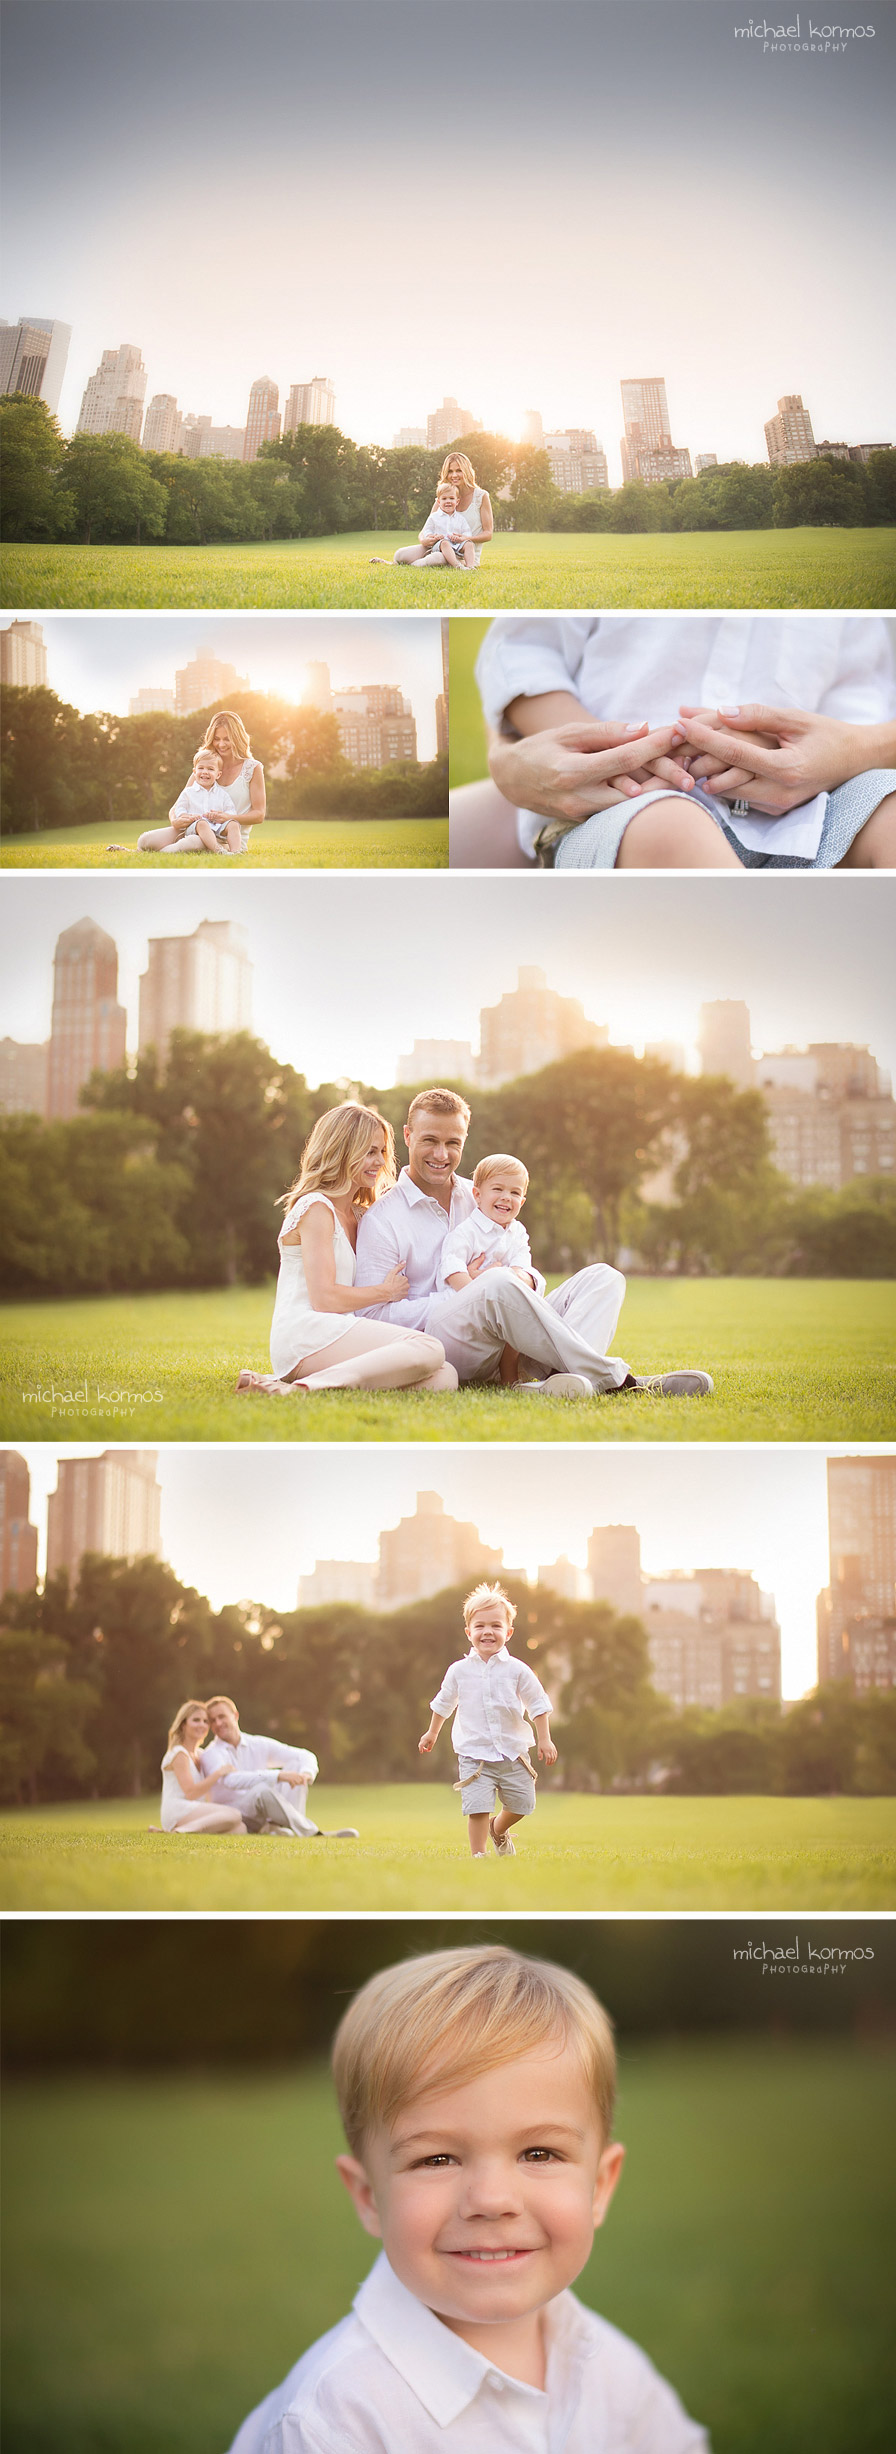 family portraits amidst the cityscape of nyc